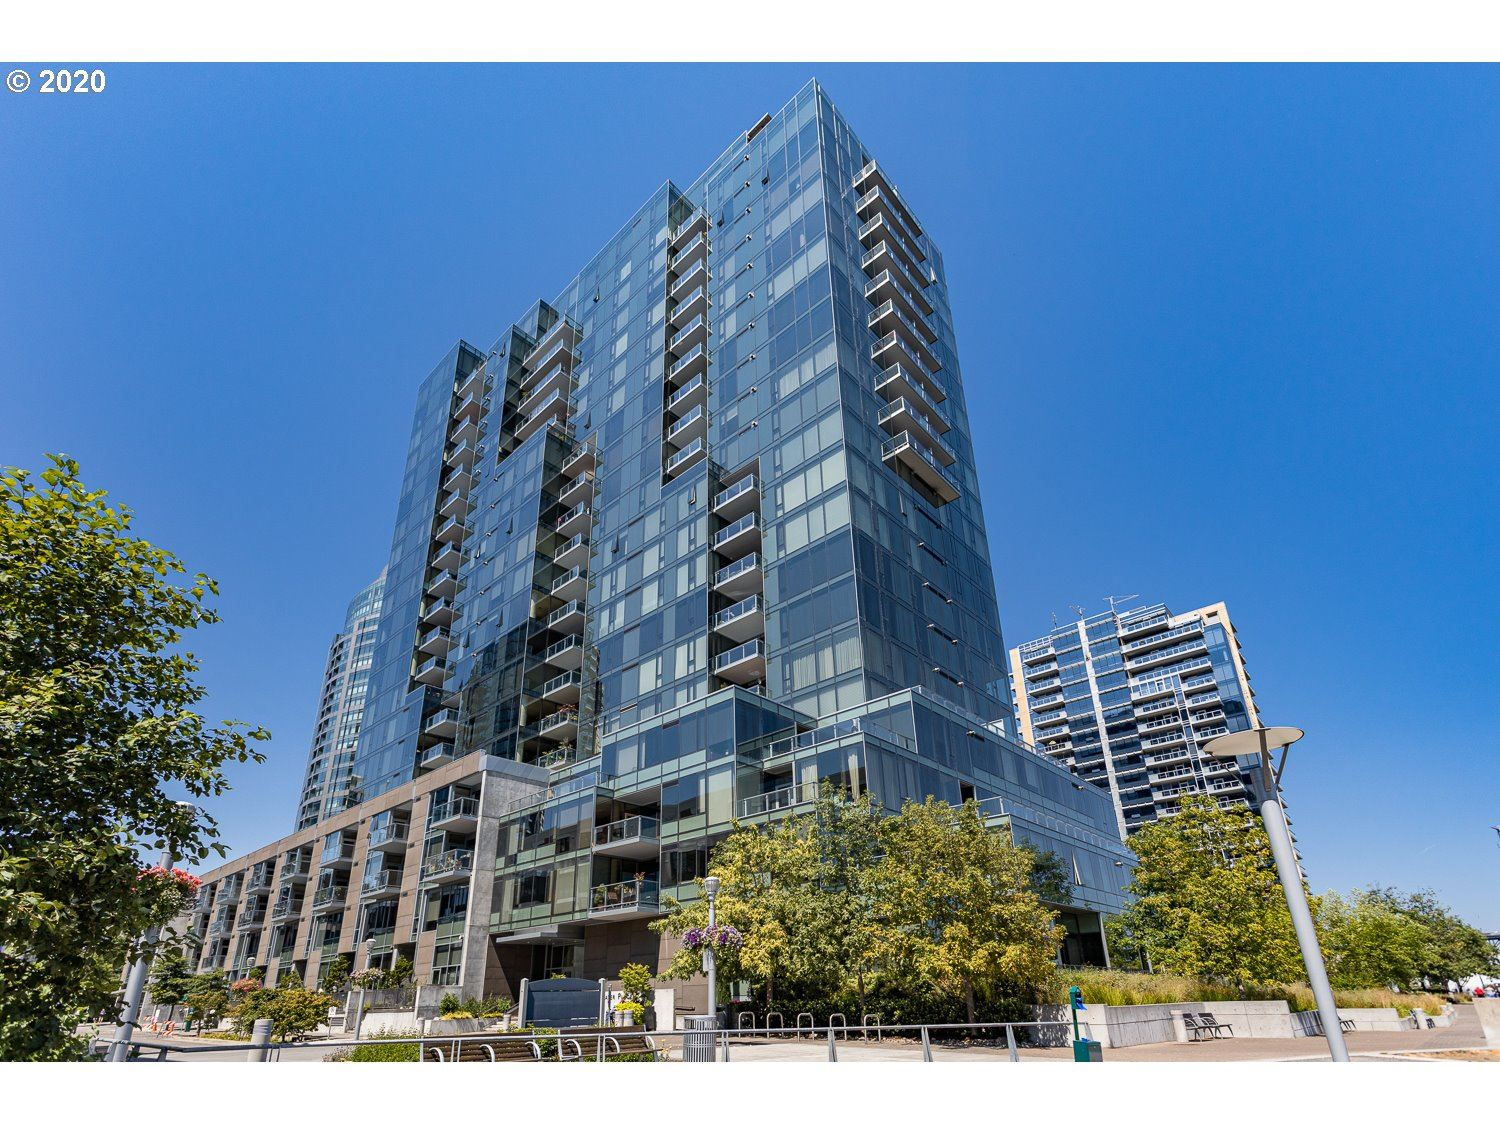 841 S GAINES ST #235, Portland, OR 97239 - MLS#: 20255746